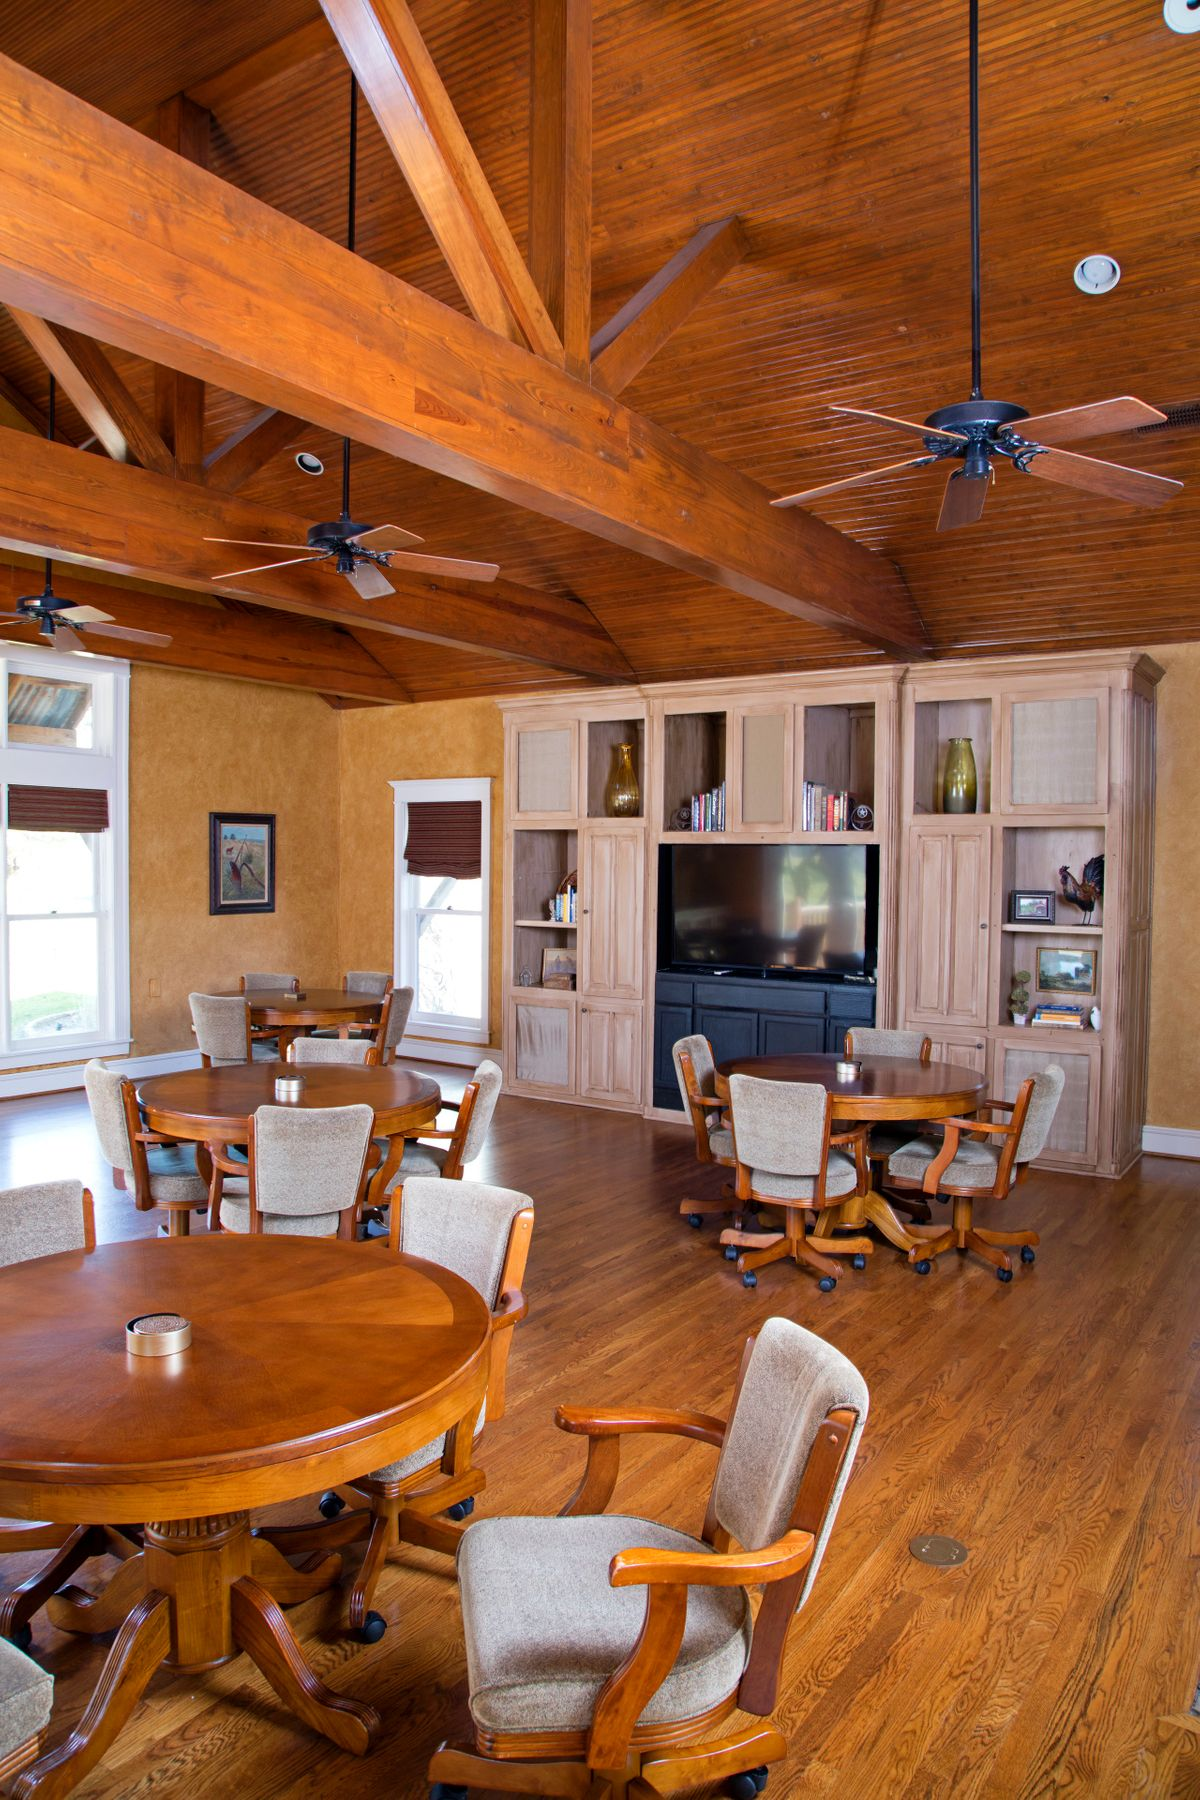 Sanders Hitch Traditional Home Photo Video Shoot Location Interior Rooms 35.jpg